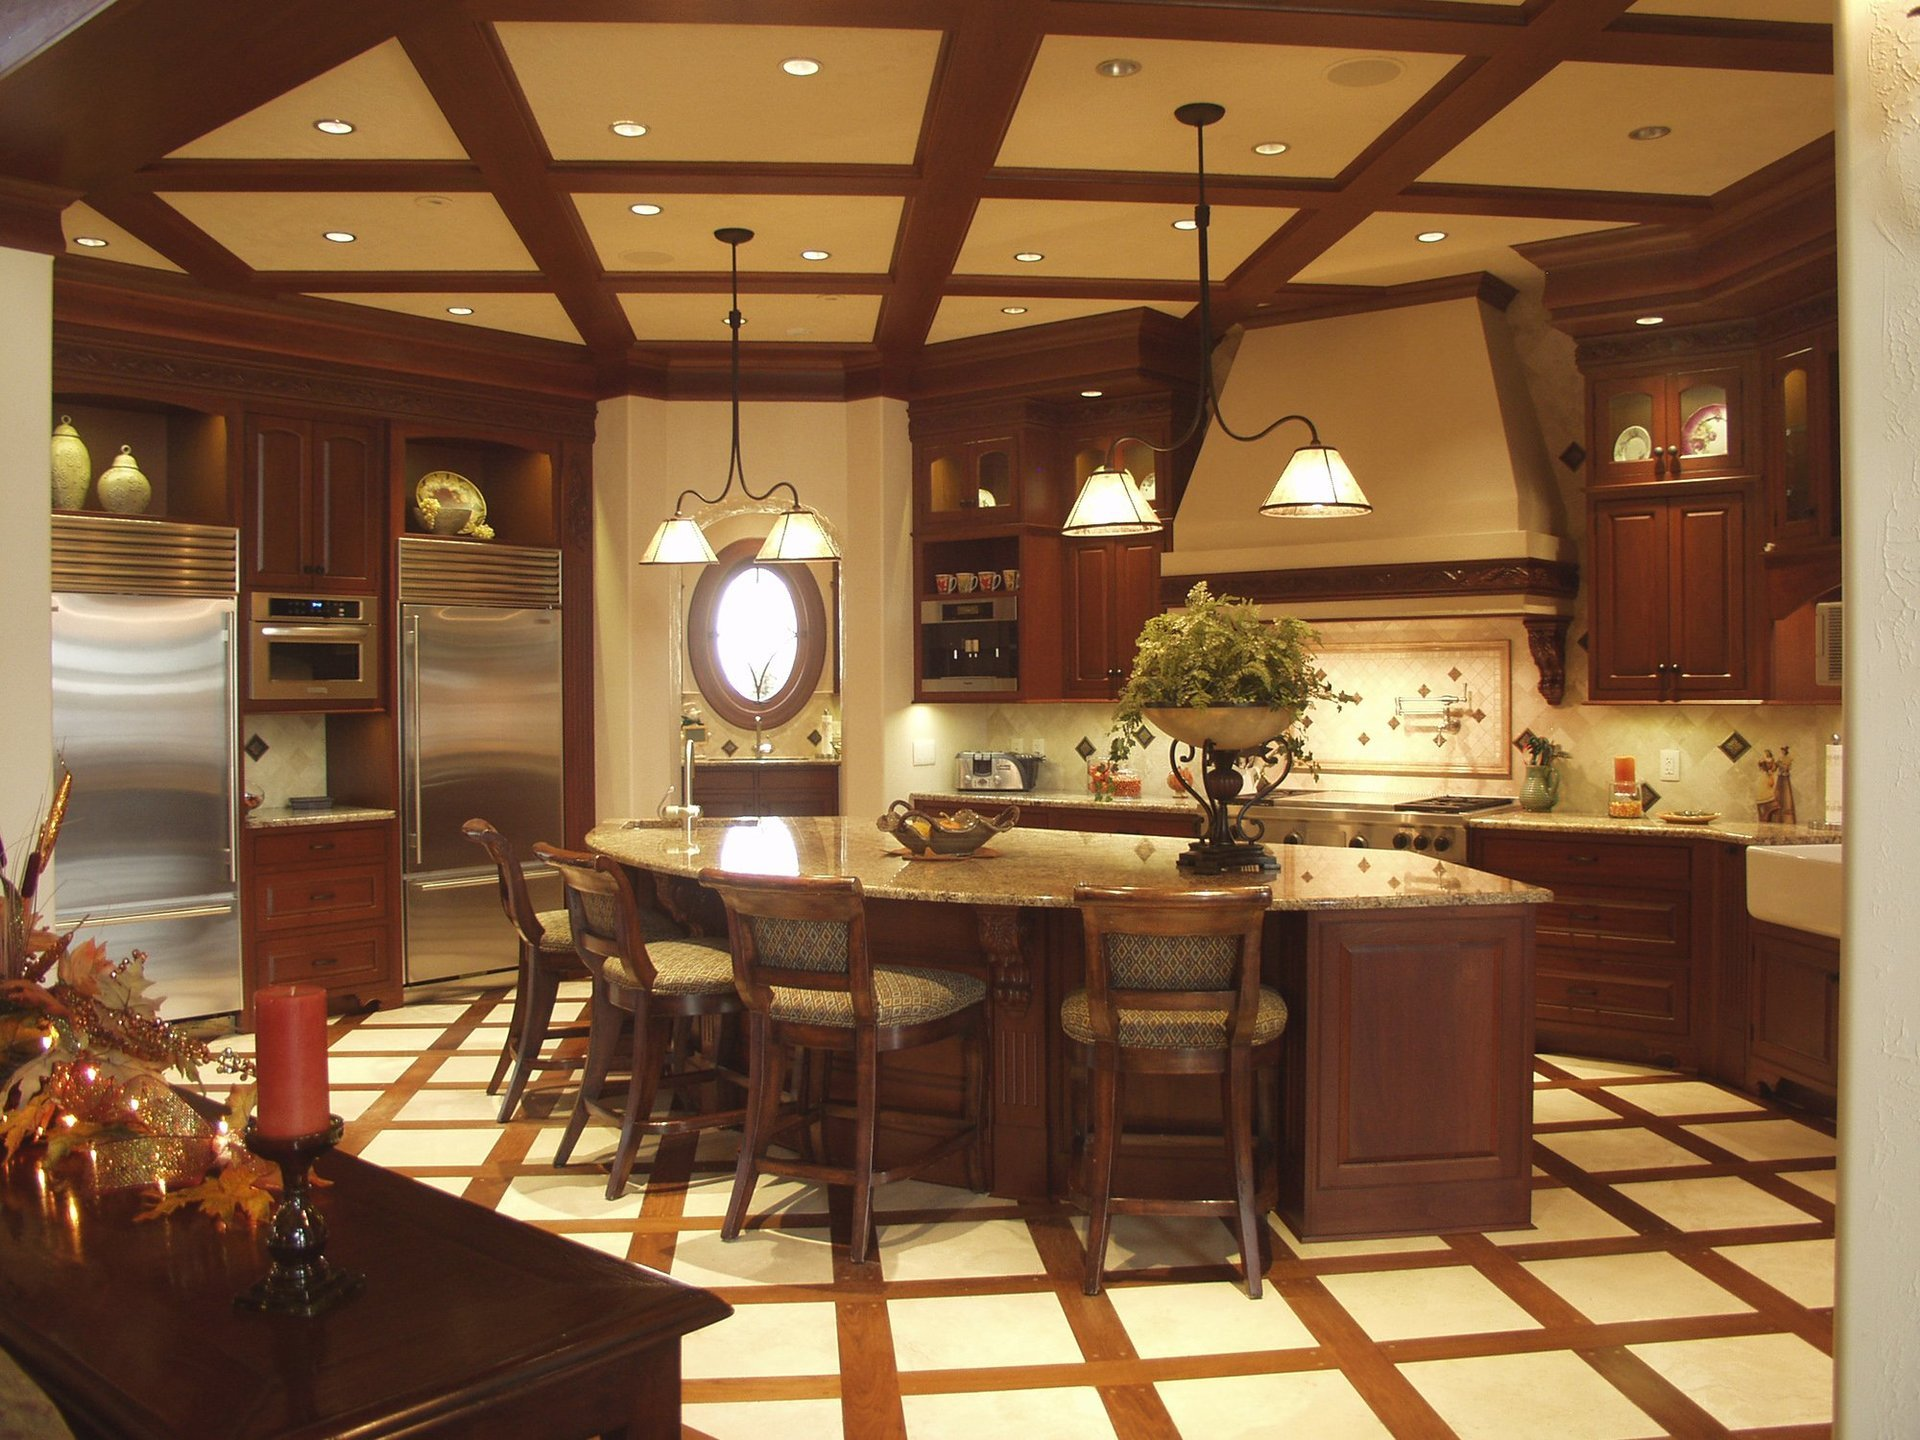 Featherstone Cabinetry and Design | Rothschild, WI ...